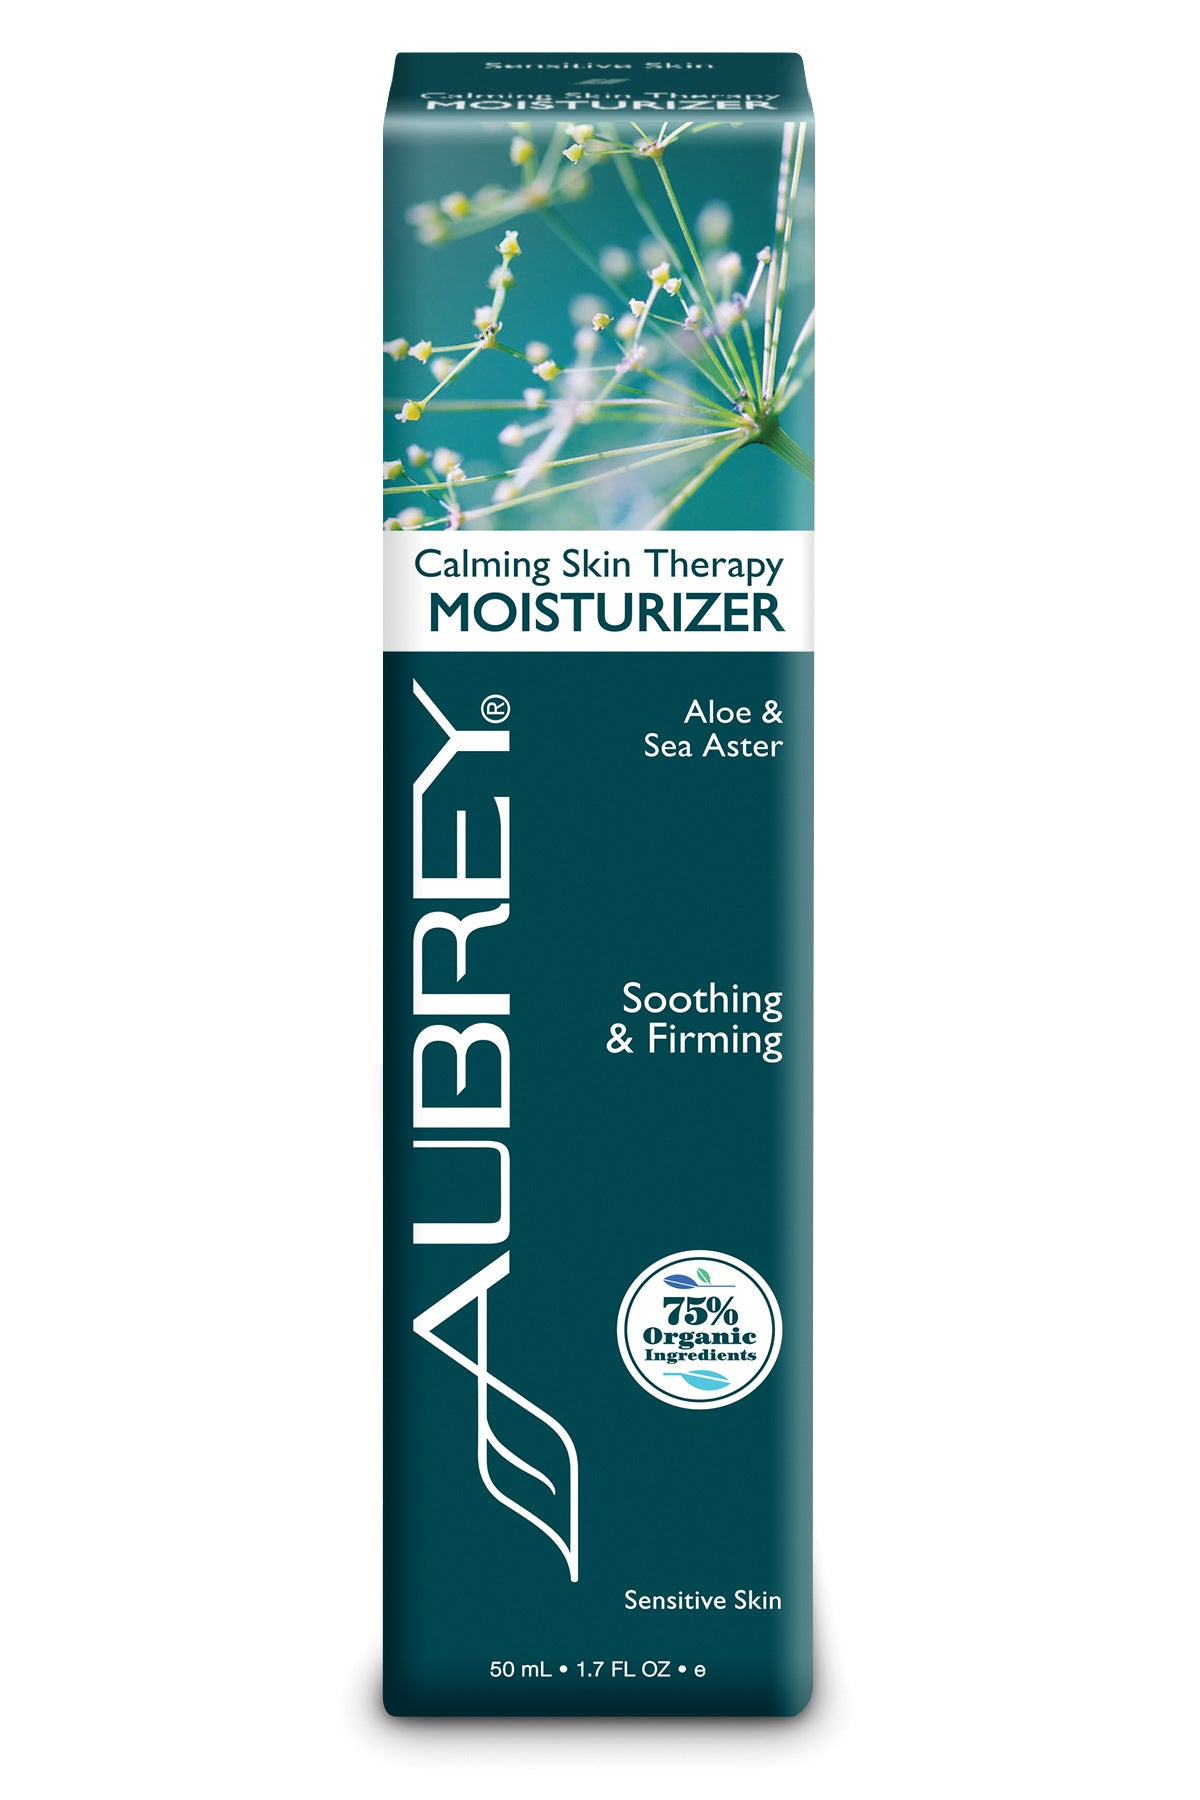 Calming Skin Therapy Moisturizer - 1.7oz